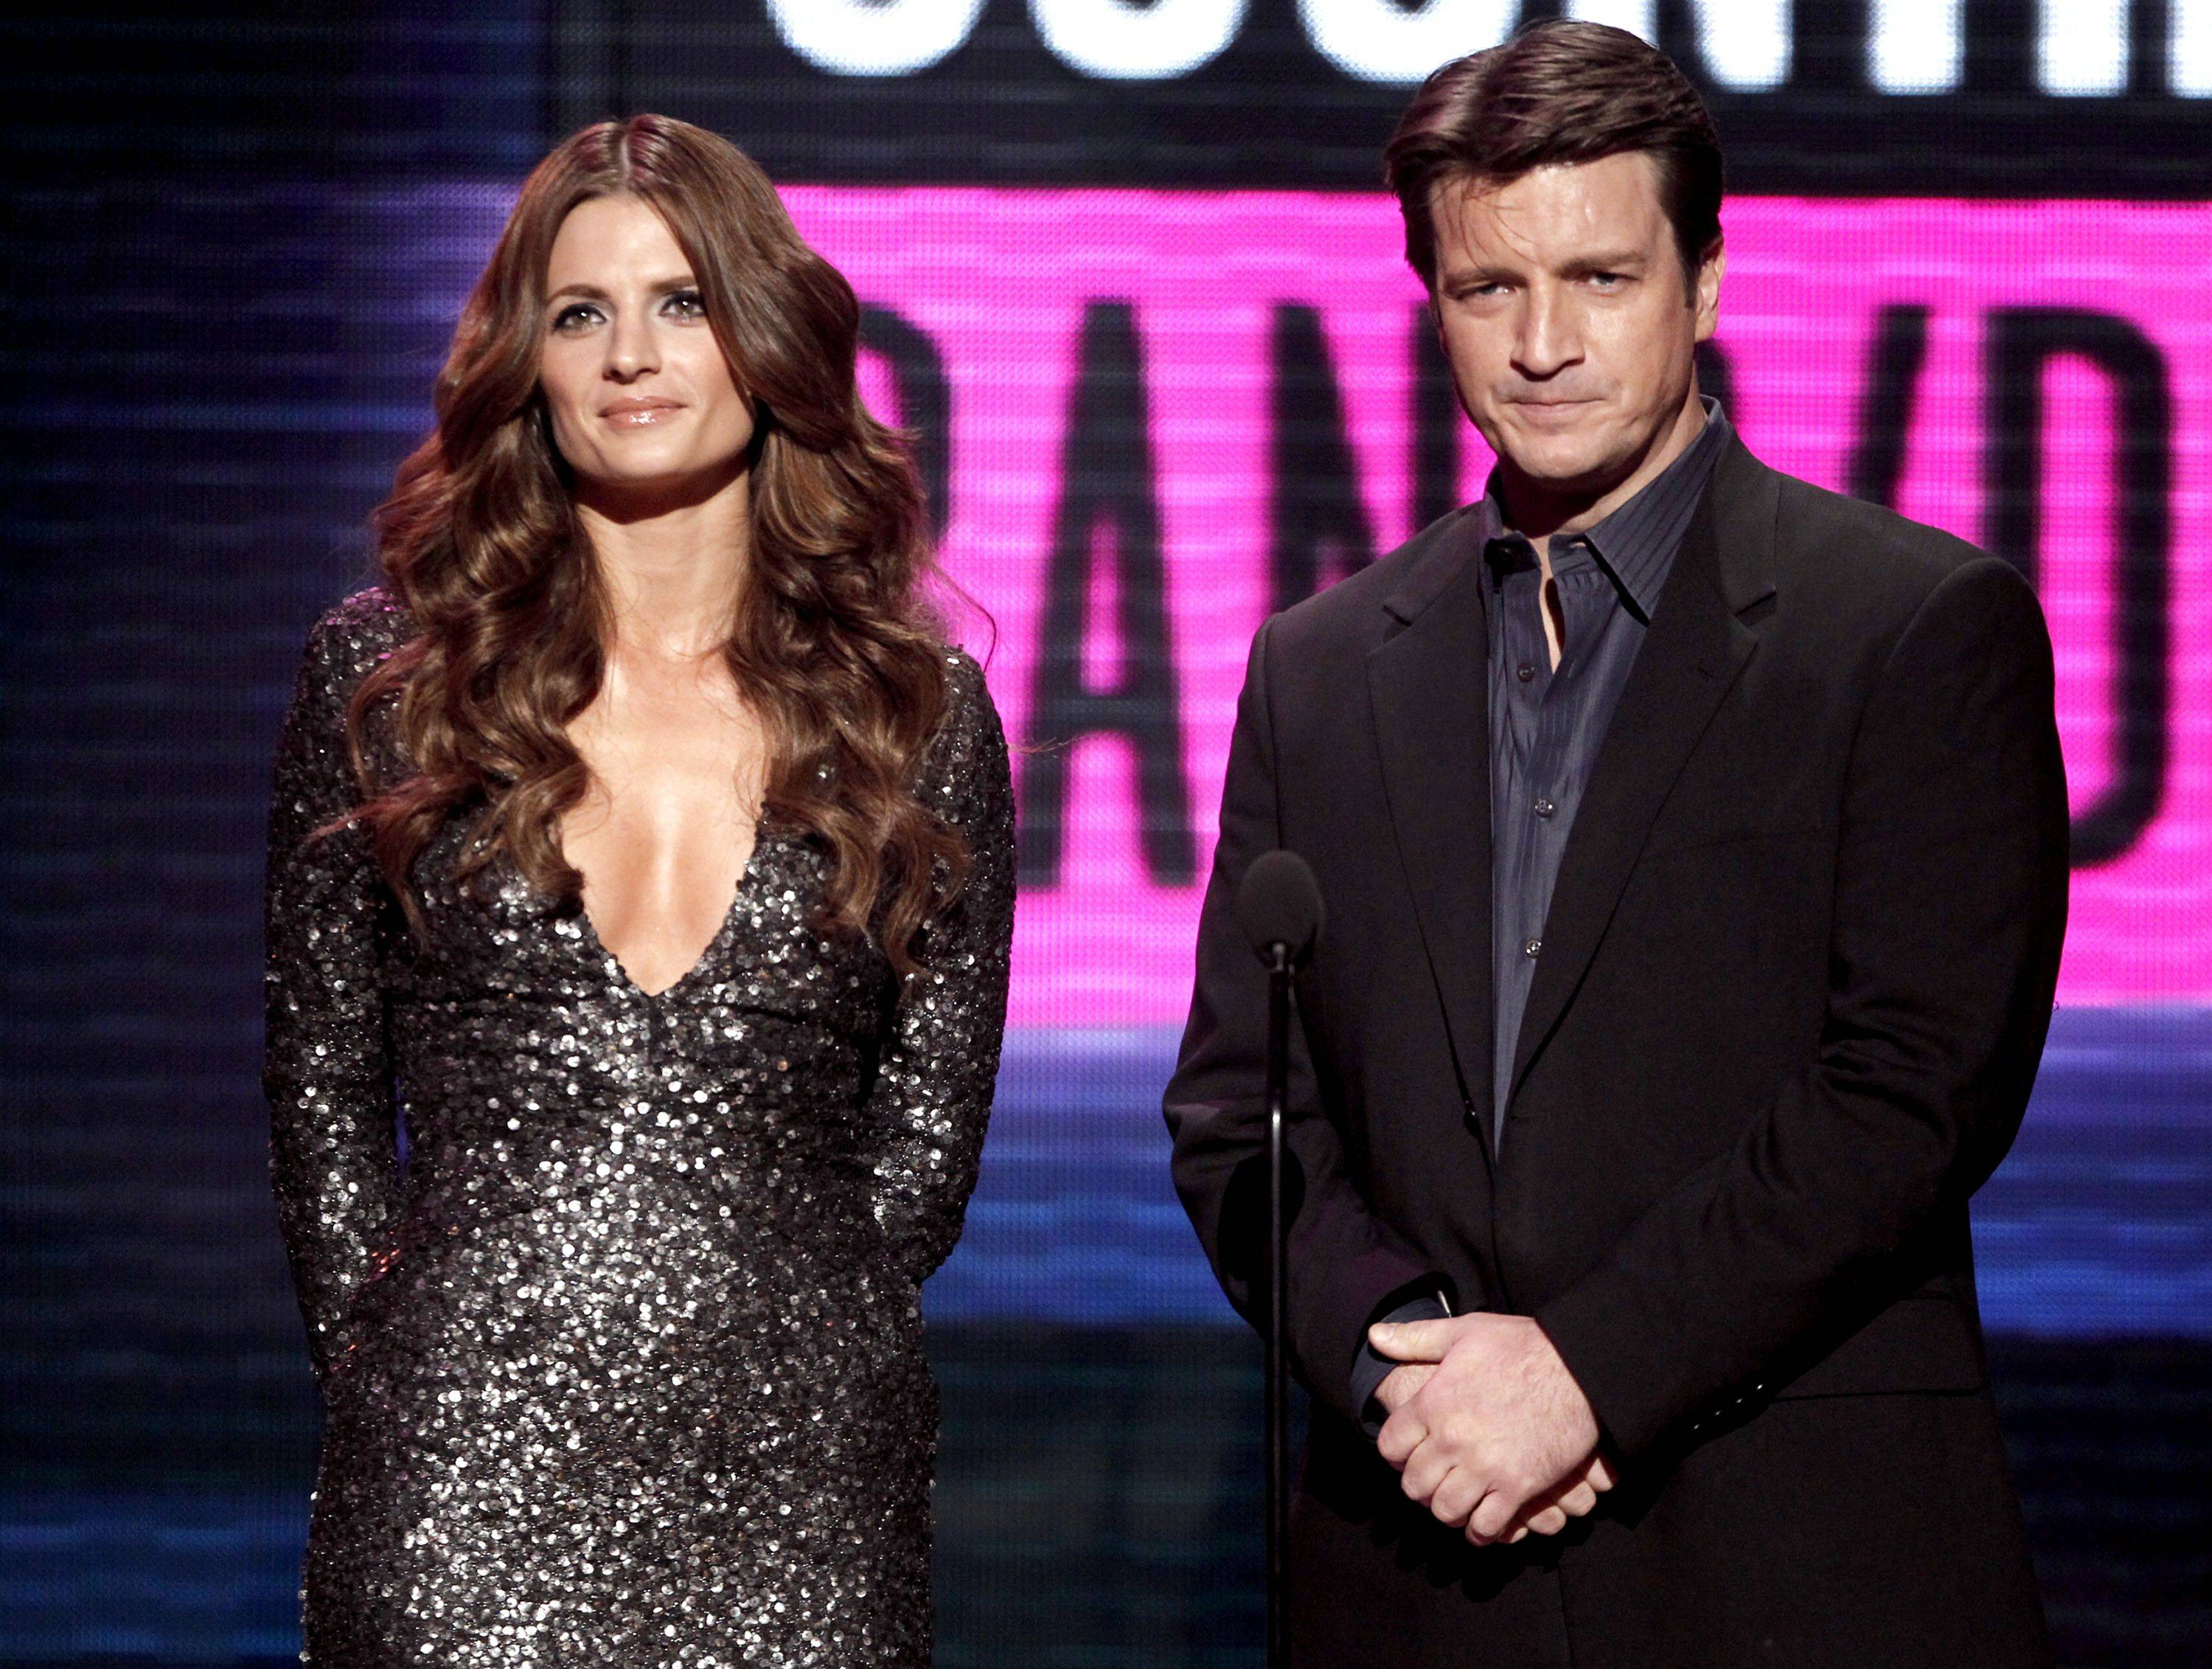 """Castle"" co-stars Stana Katic, left, and Nathan Fillion are seen on stage at the 38th Annual American Music Awards."